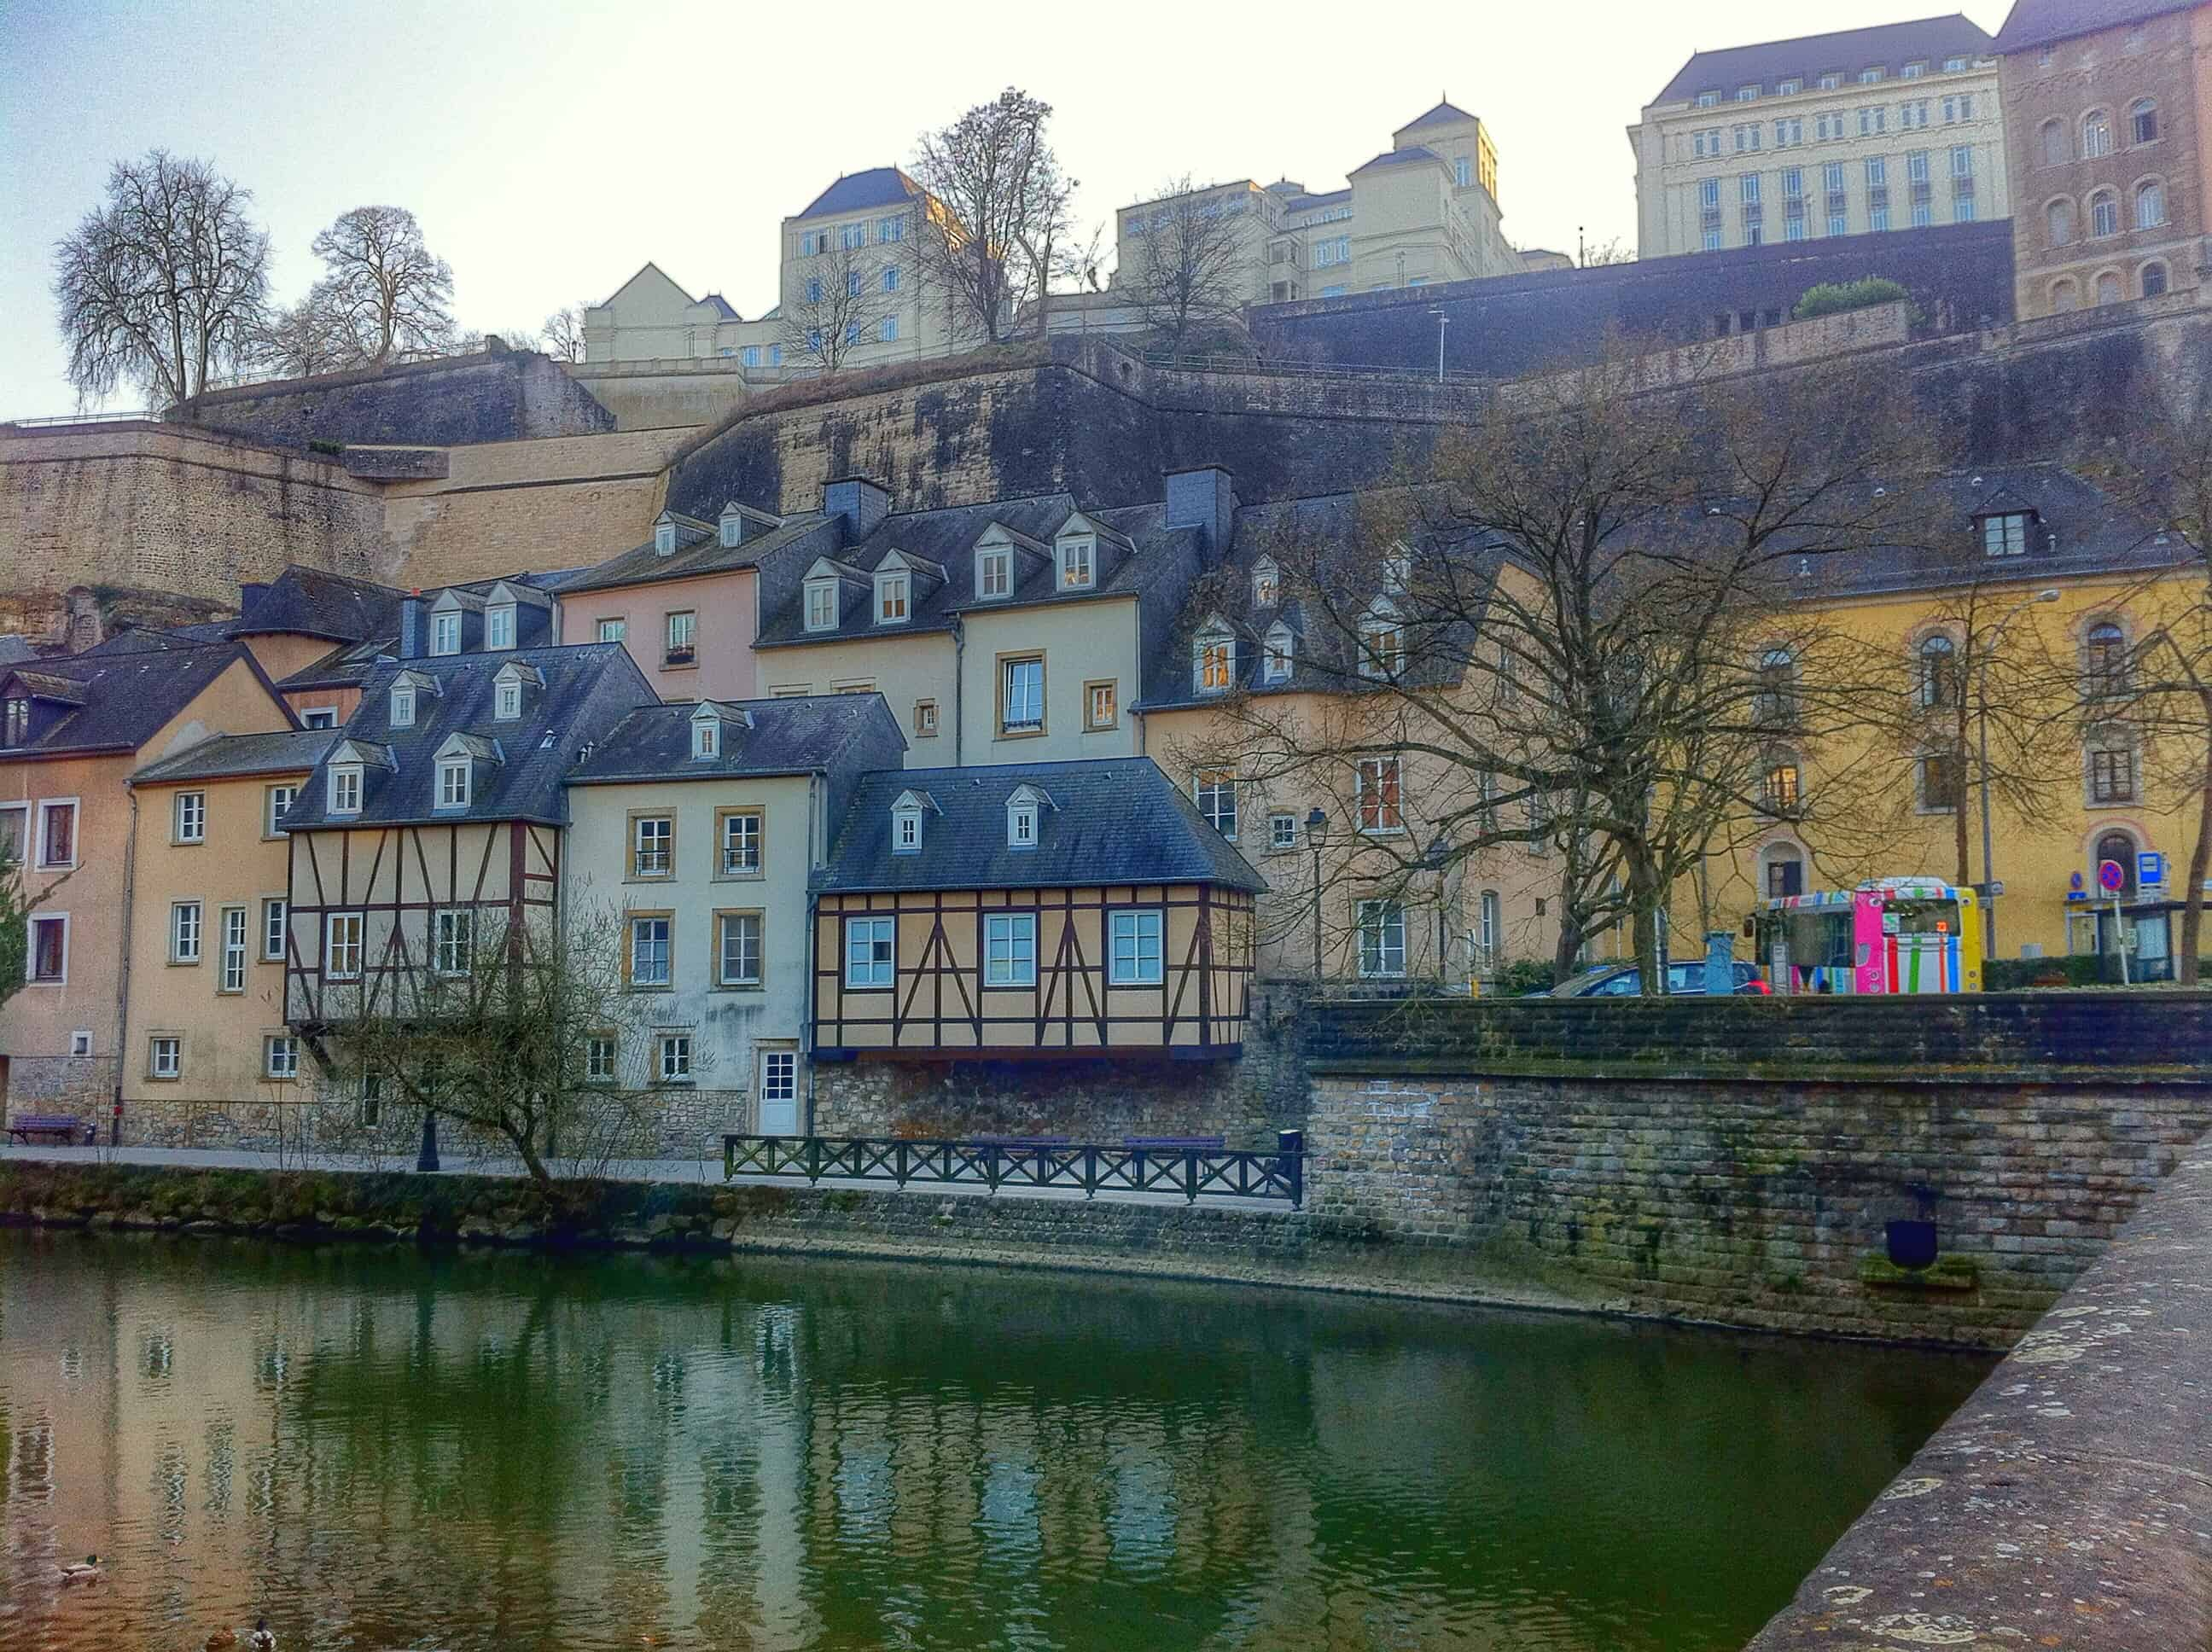 visiting the lower city of grund was one of my favorite things to do in luxembourg